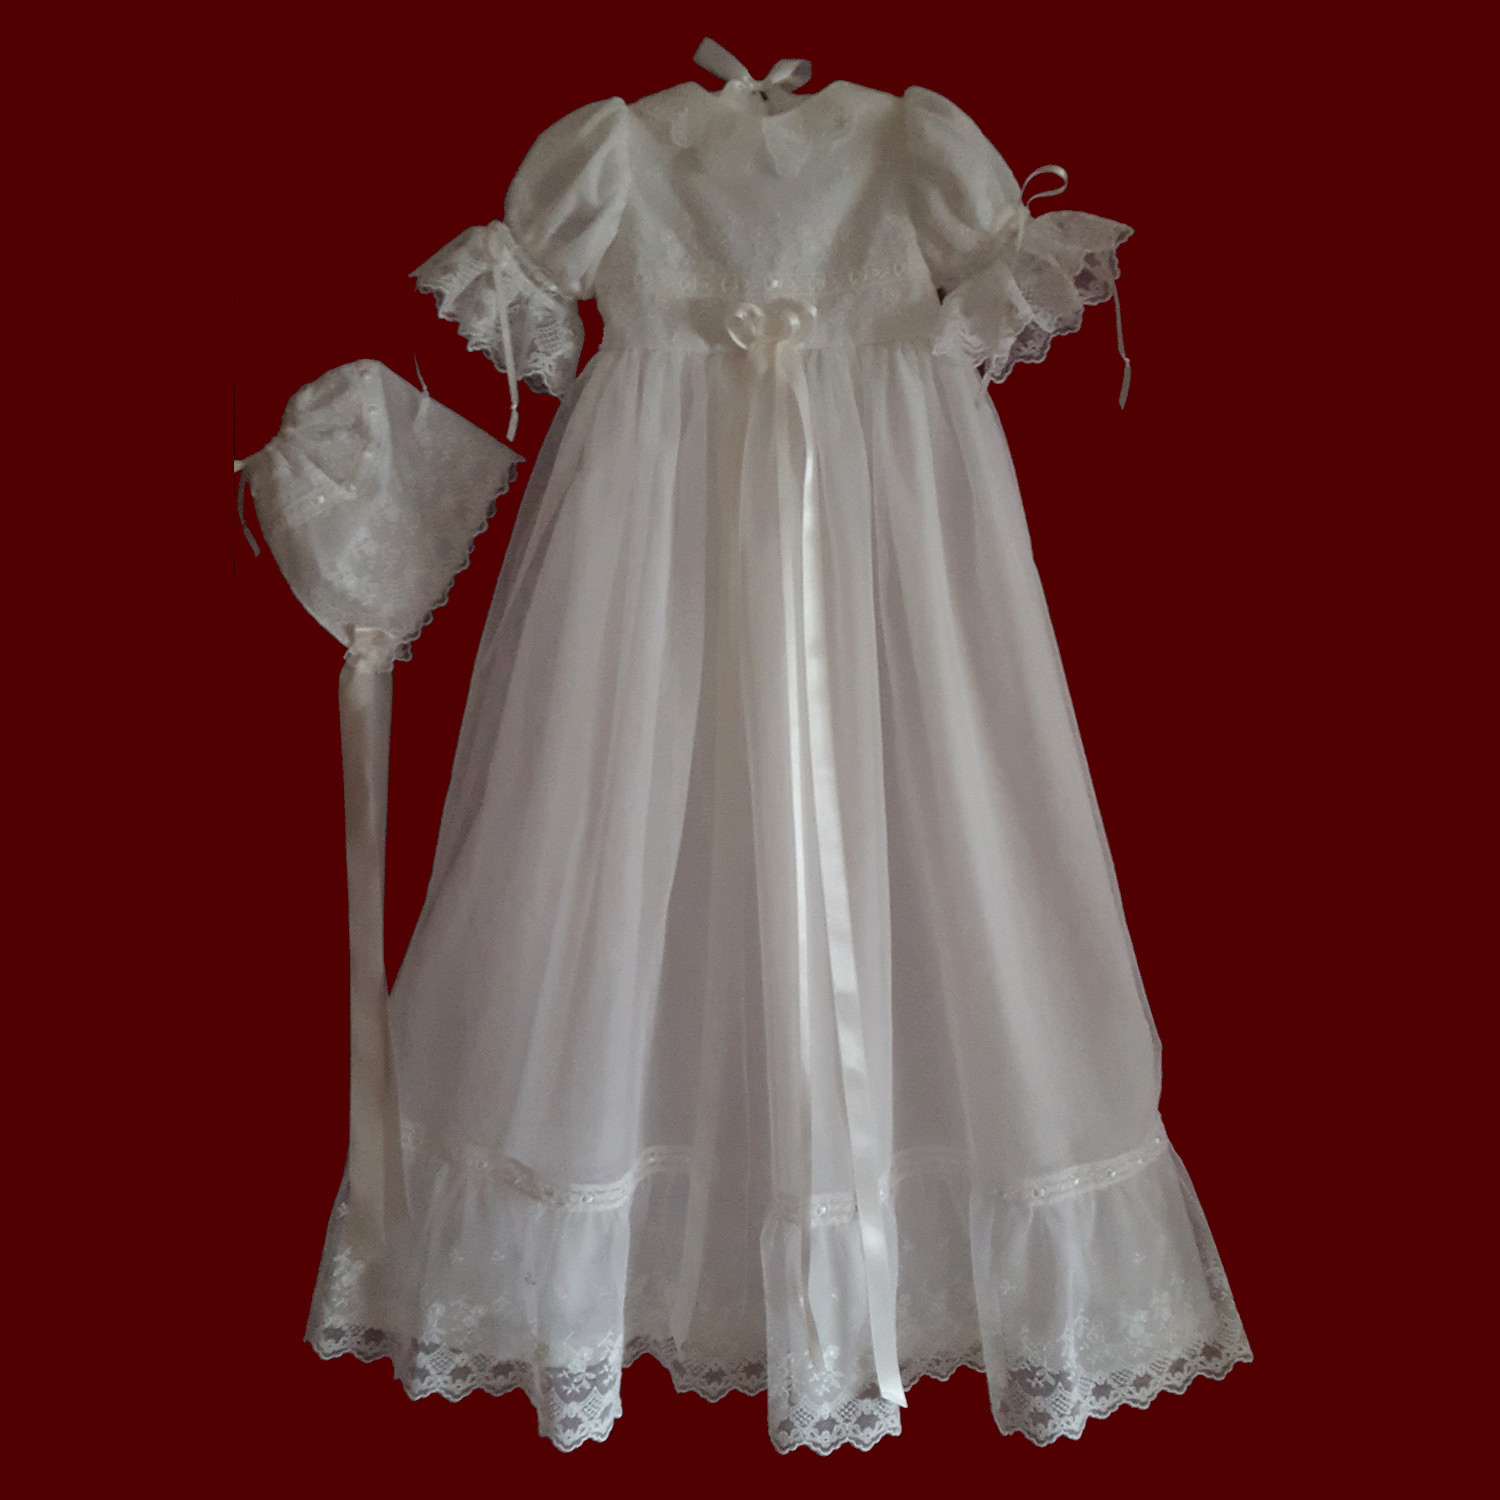 Embroidered English Netting Lace Christening Gown, Slip & Bonnet ...